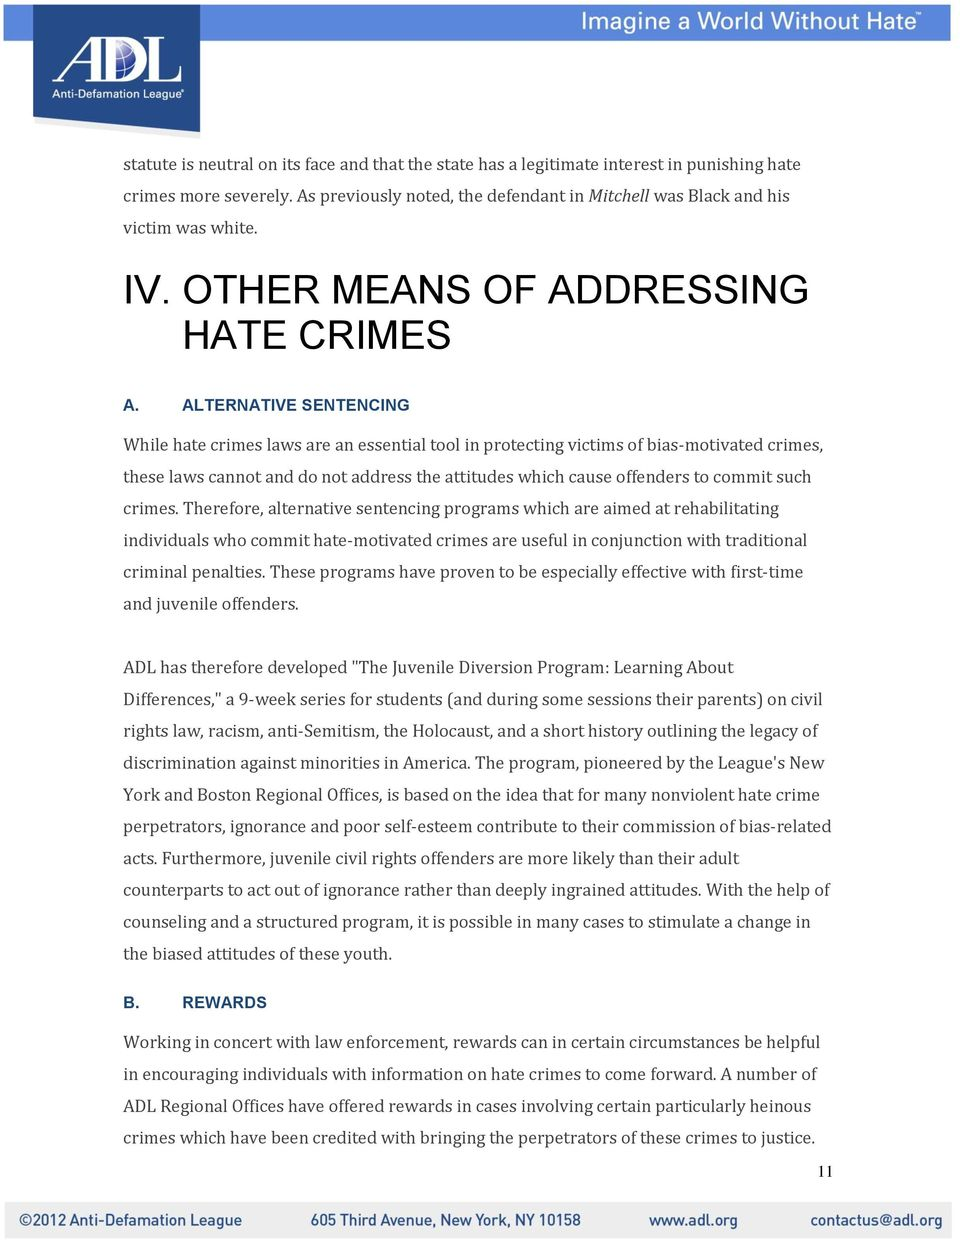 ALTERNATIVE SENTENCING While hate crimes laws are an essential tool in protecting victims of bias-motivated crimes, these laws cannot and do not address the attitudes which cause offenders to commit